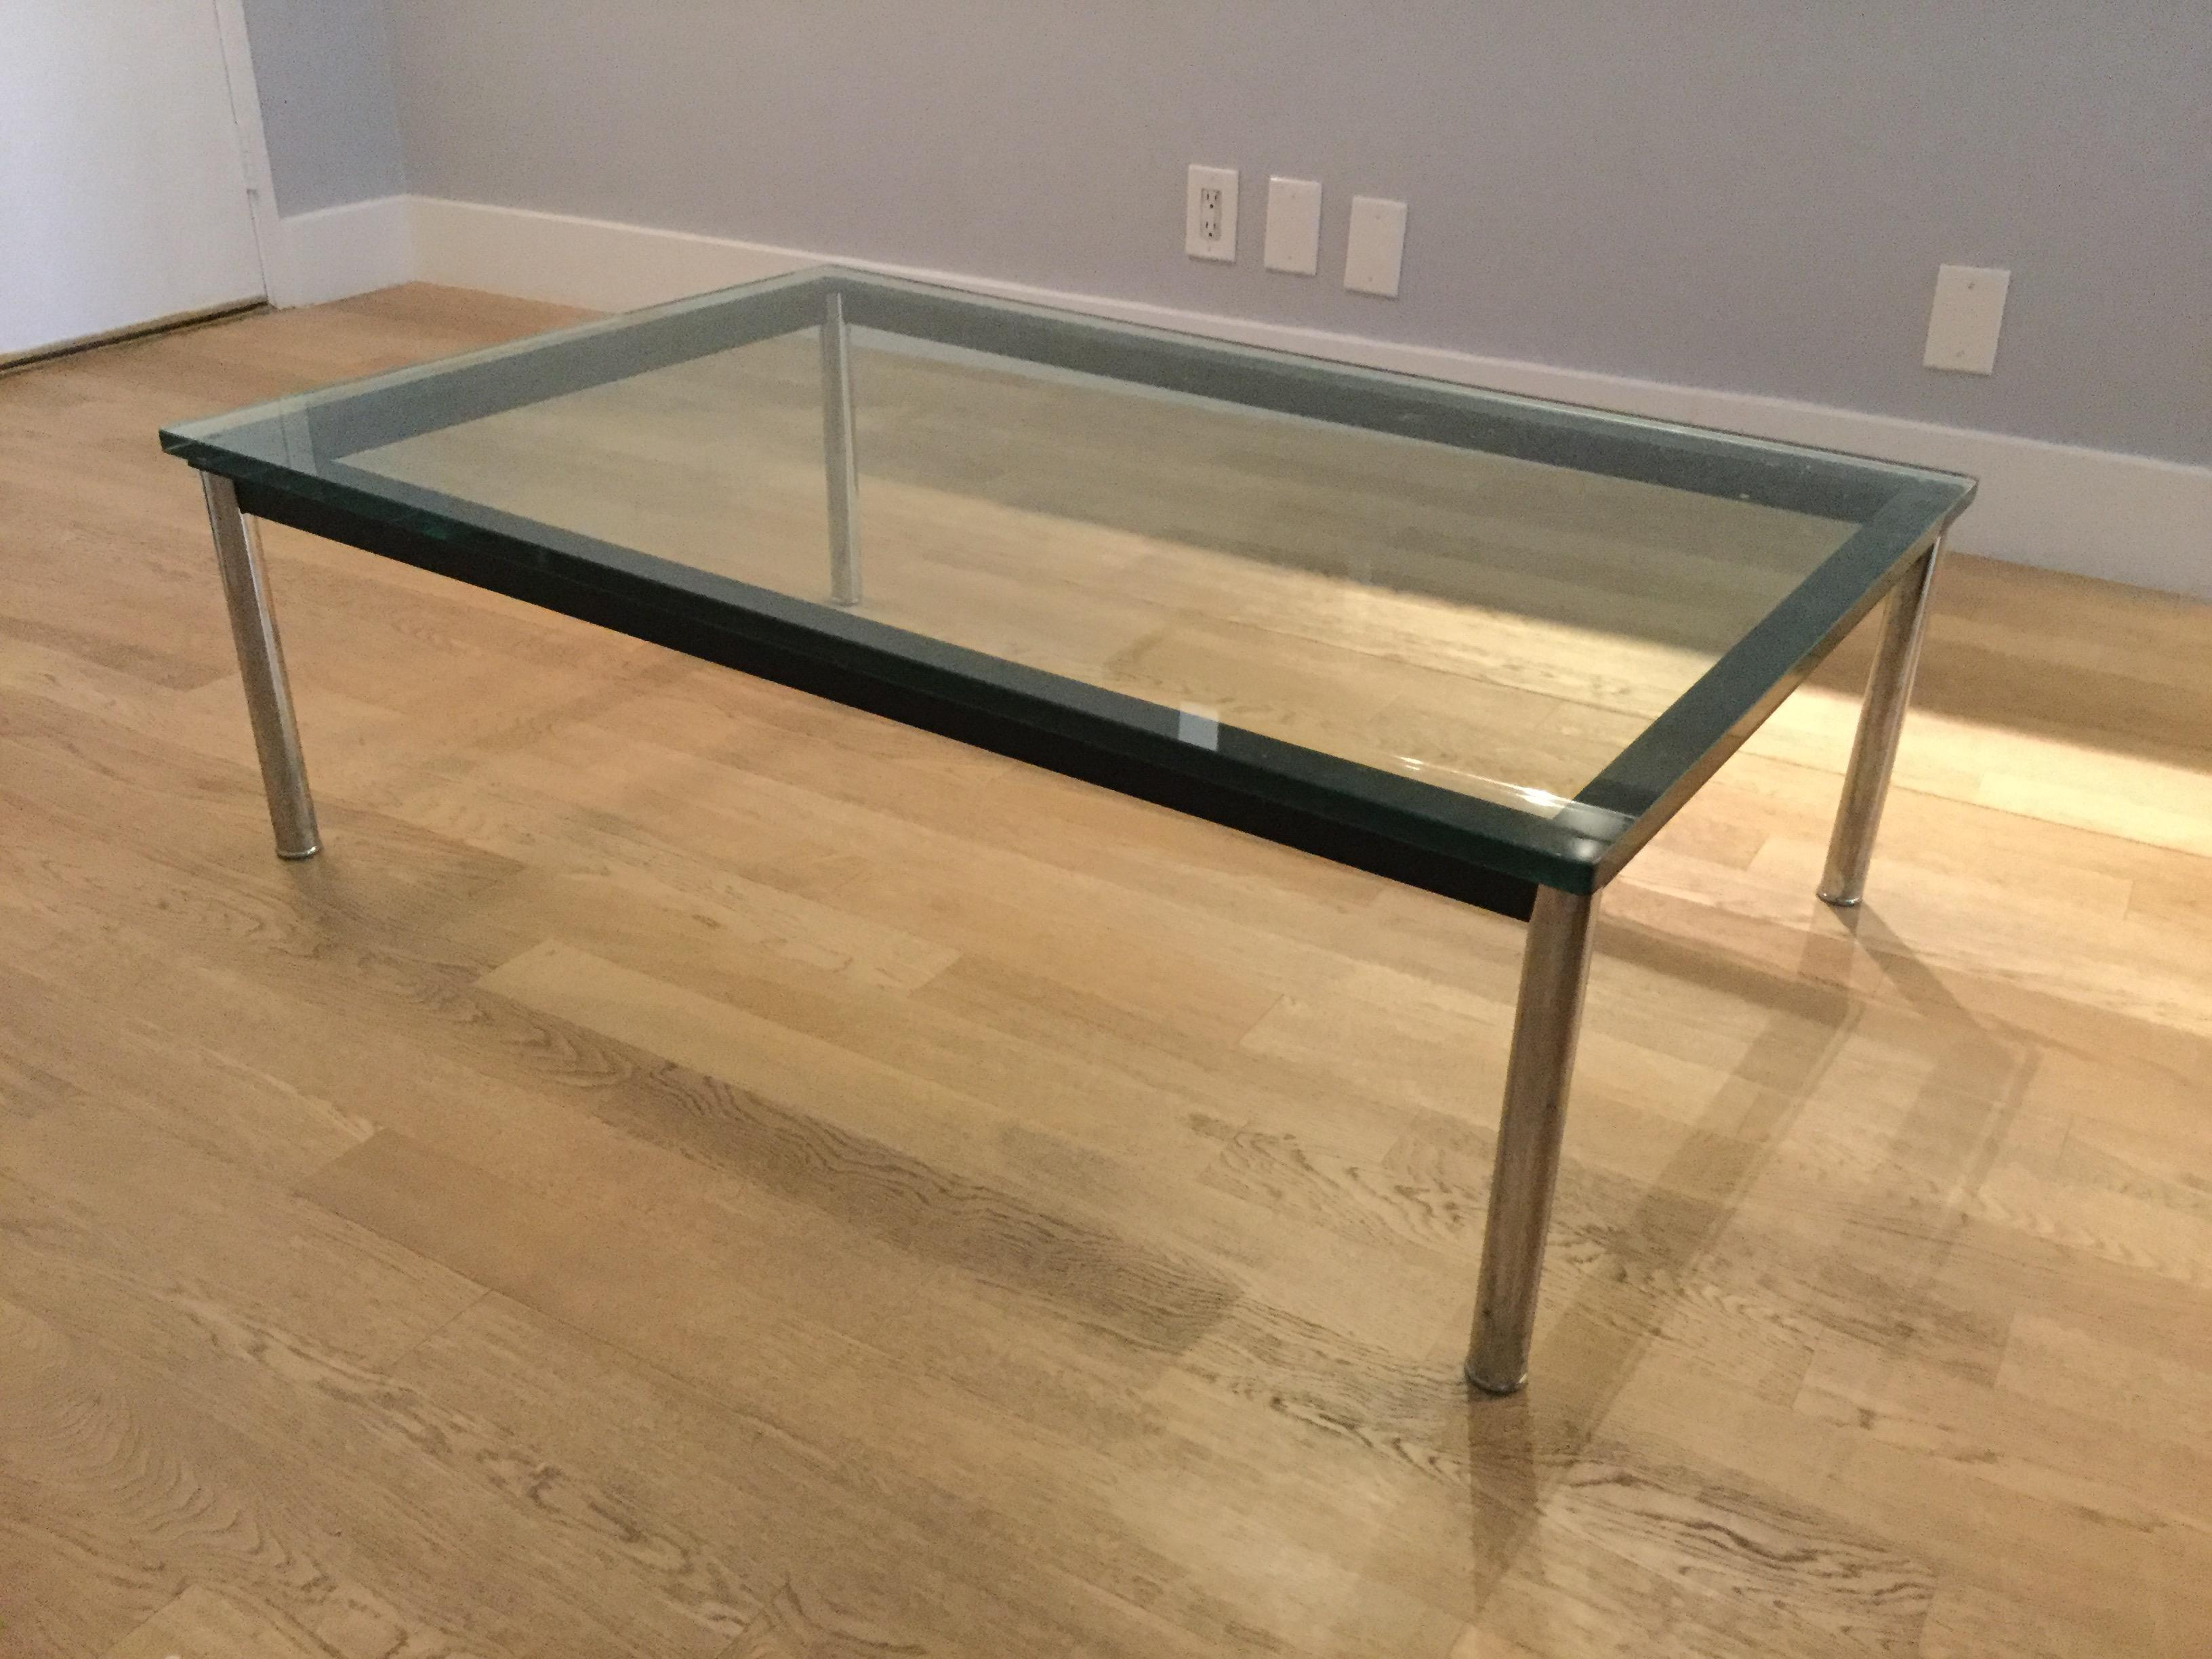 Le Corbusier Lc10 P Rectangular Coffee Table   Image 2 Of 6